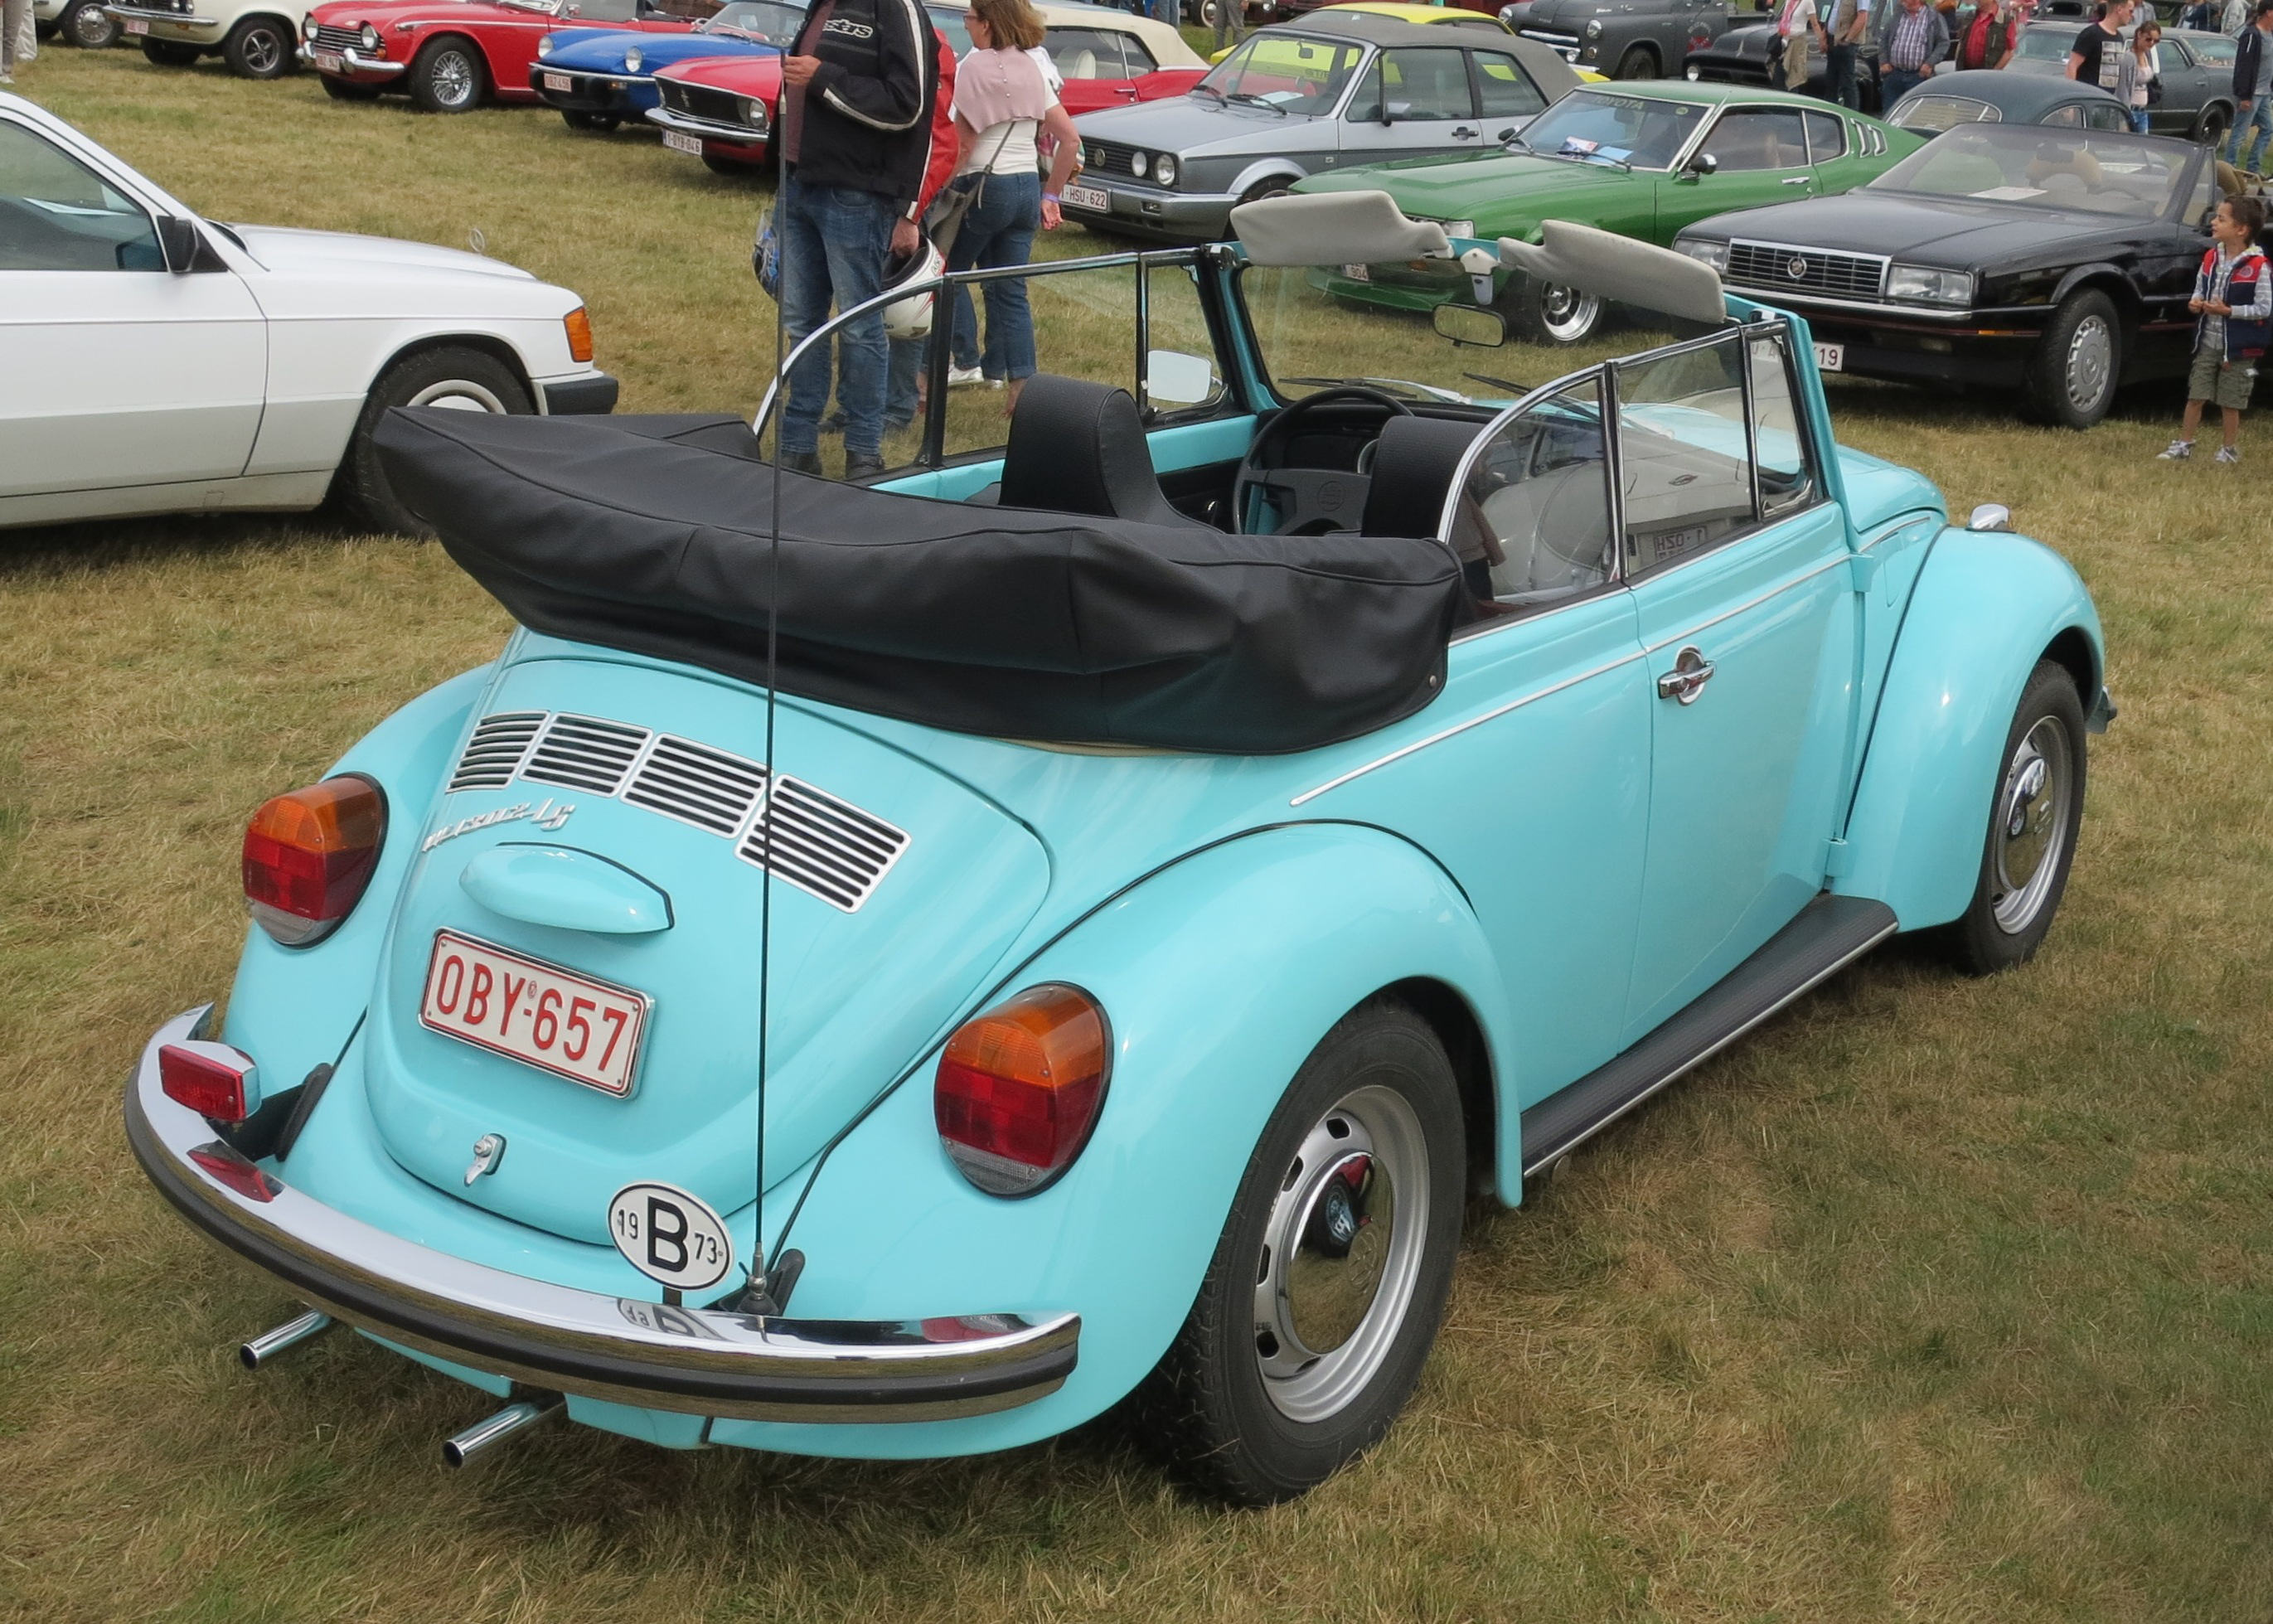 File:VW 1302 LS cabriolet from slightly above average height.JPG